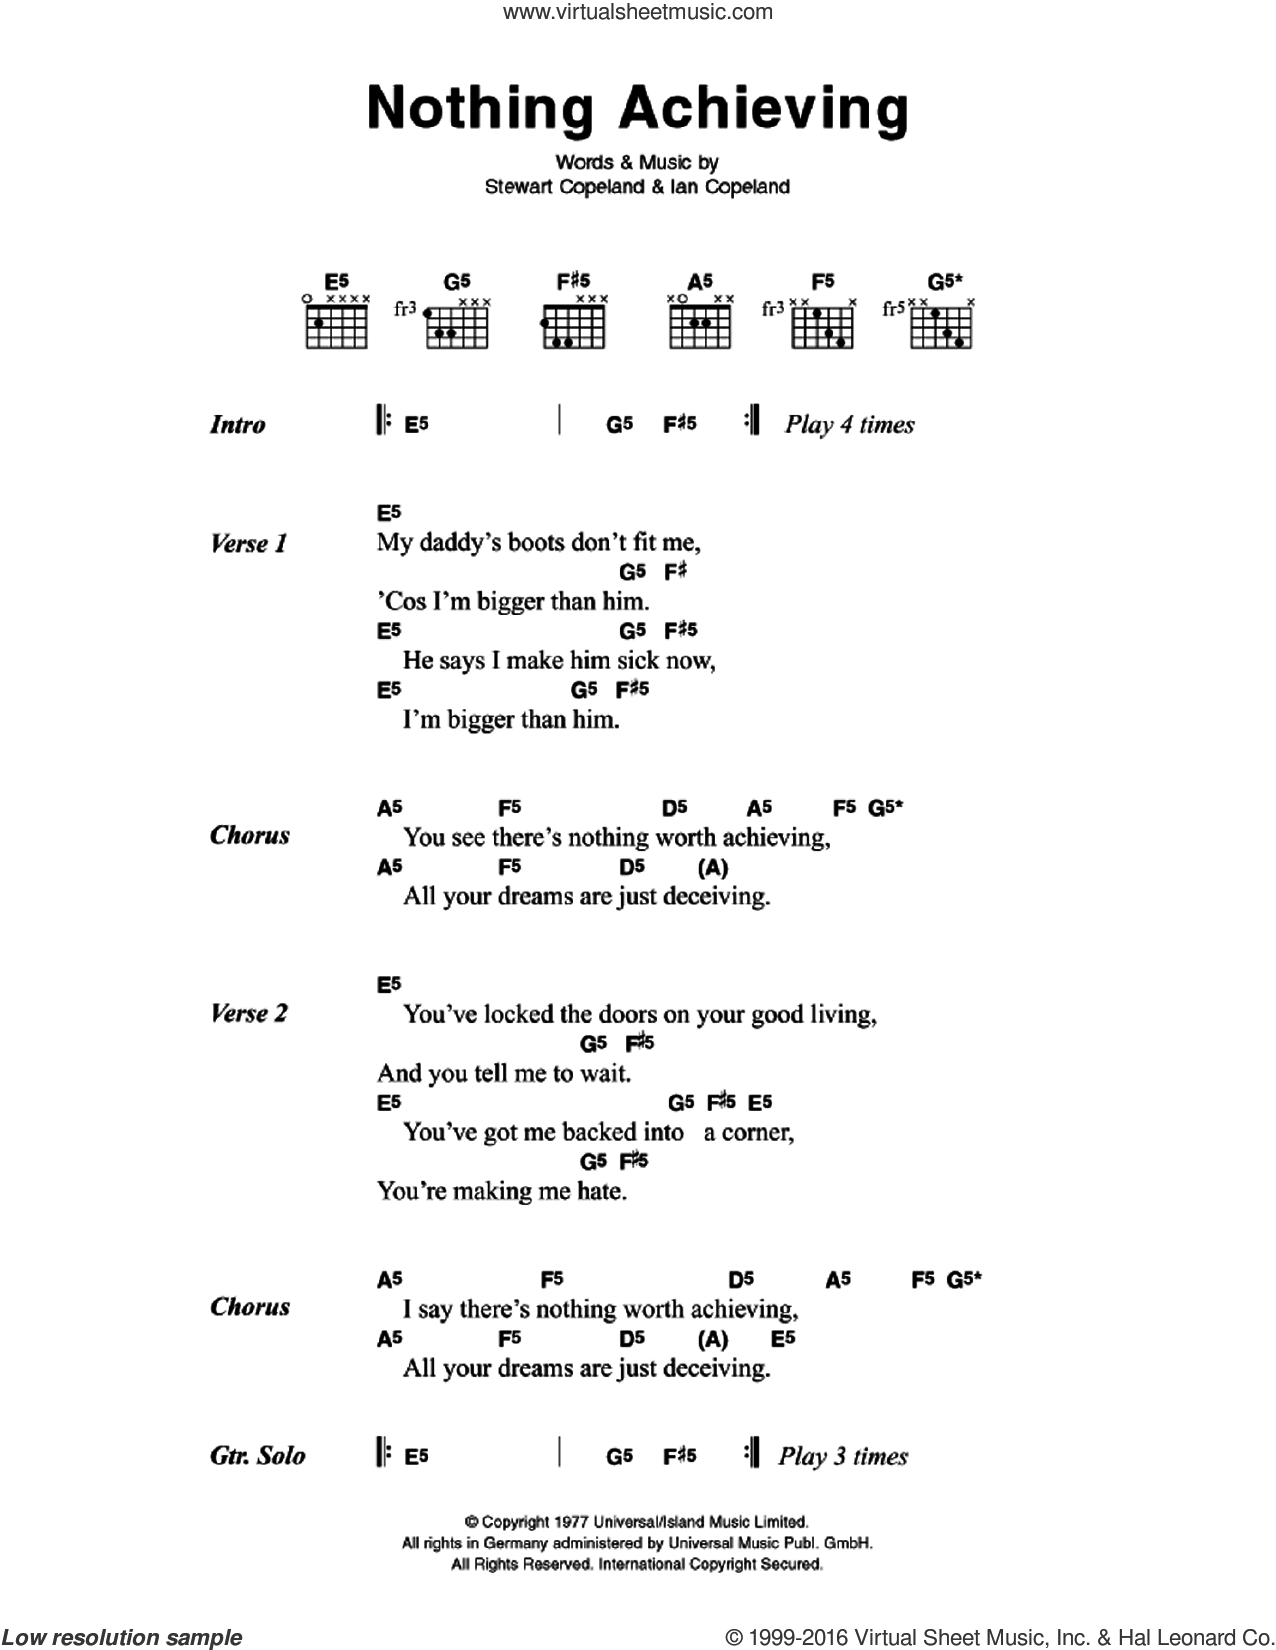 Nothing Achieving sheet music for guitar (chords) by Stewart Copeland